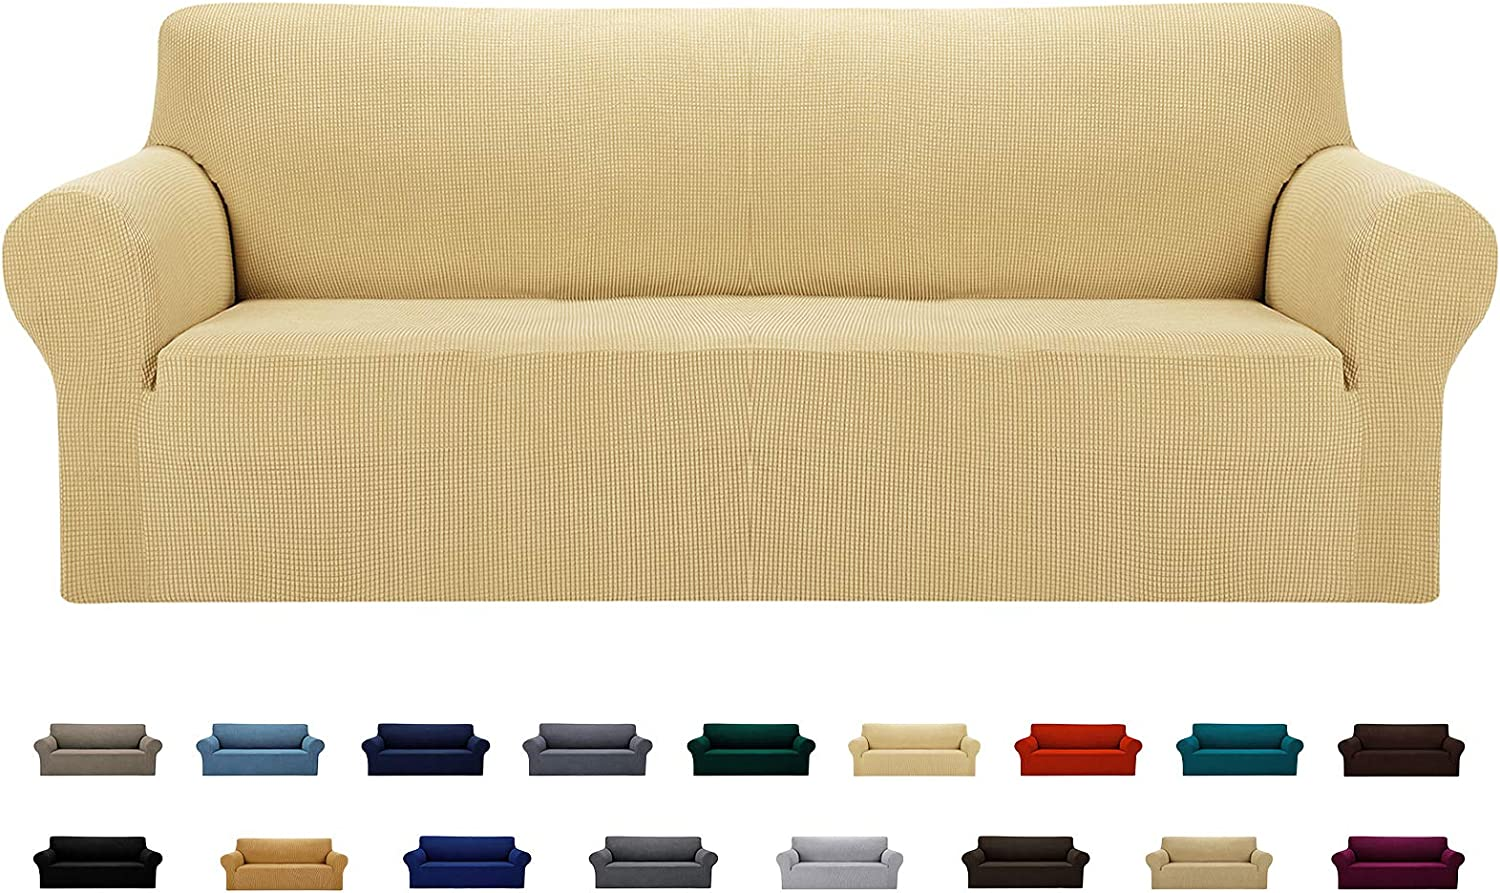 AlGaiety Stretch Sofa Cover Furniture New arrival Spand Protector Slipcover Max 45% OFF